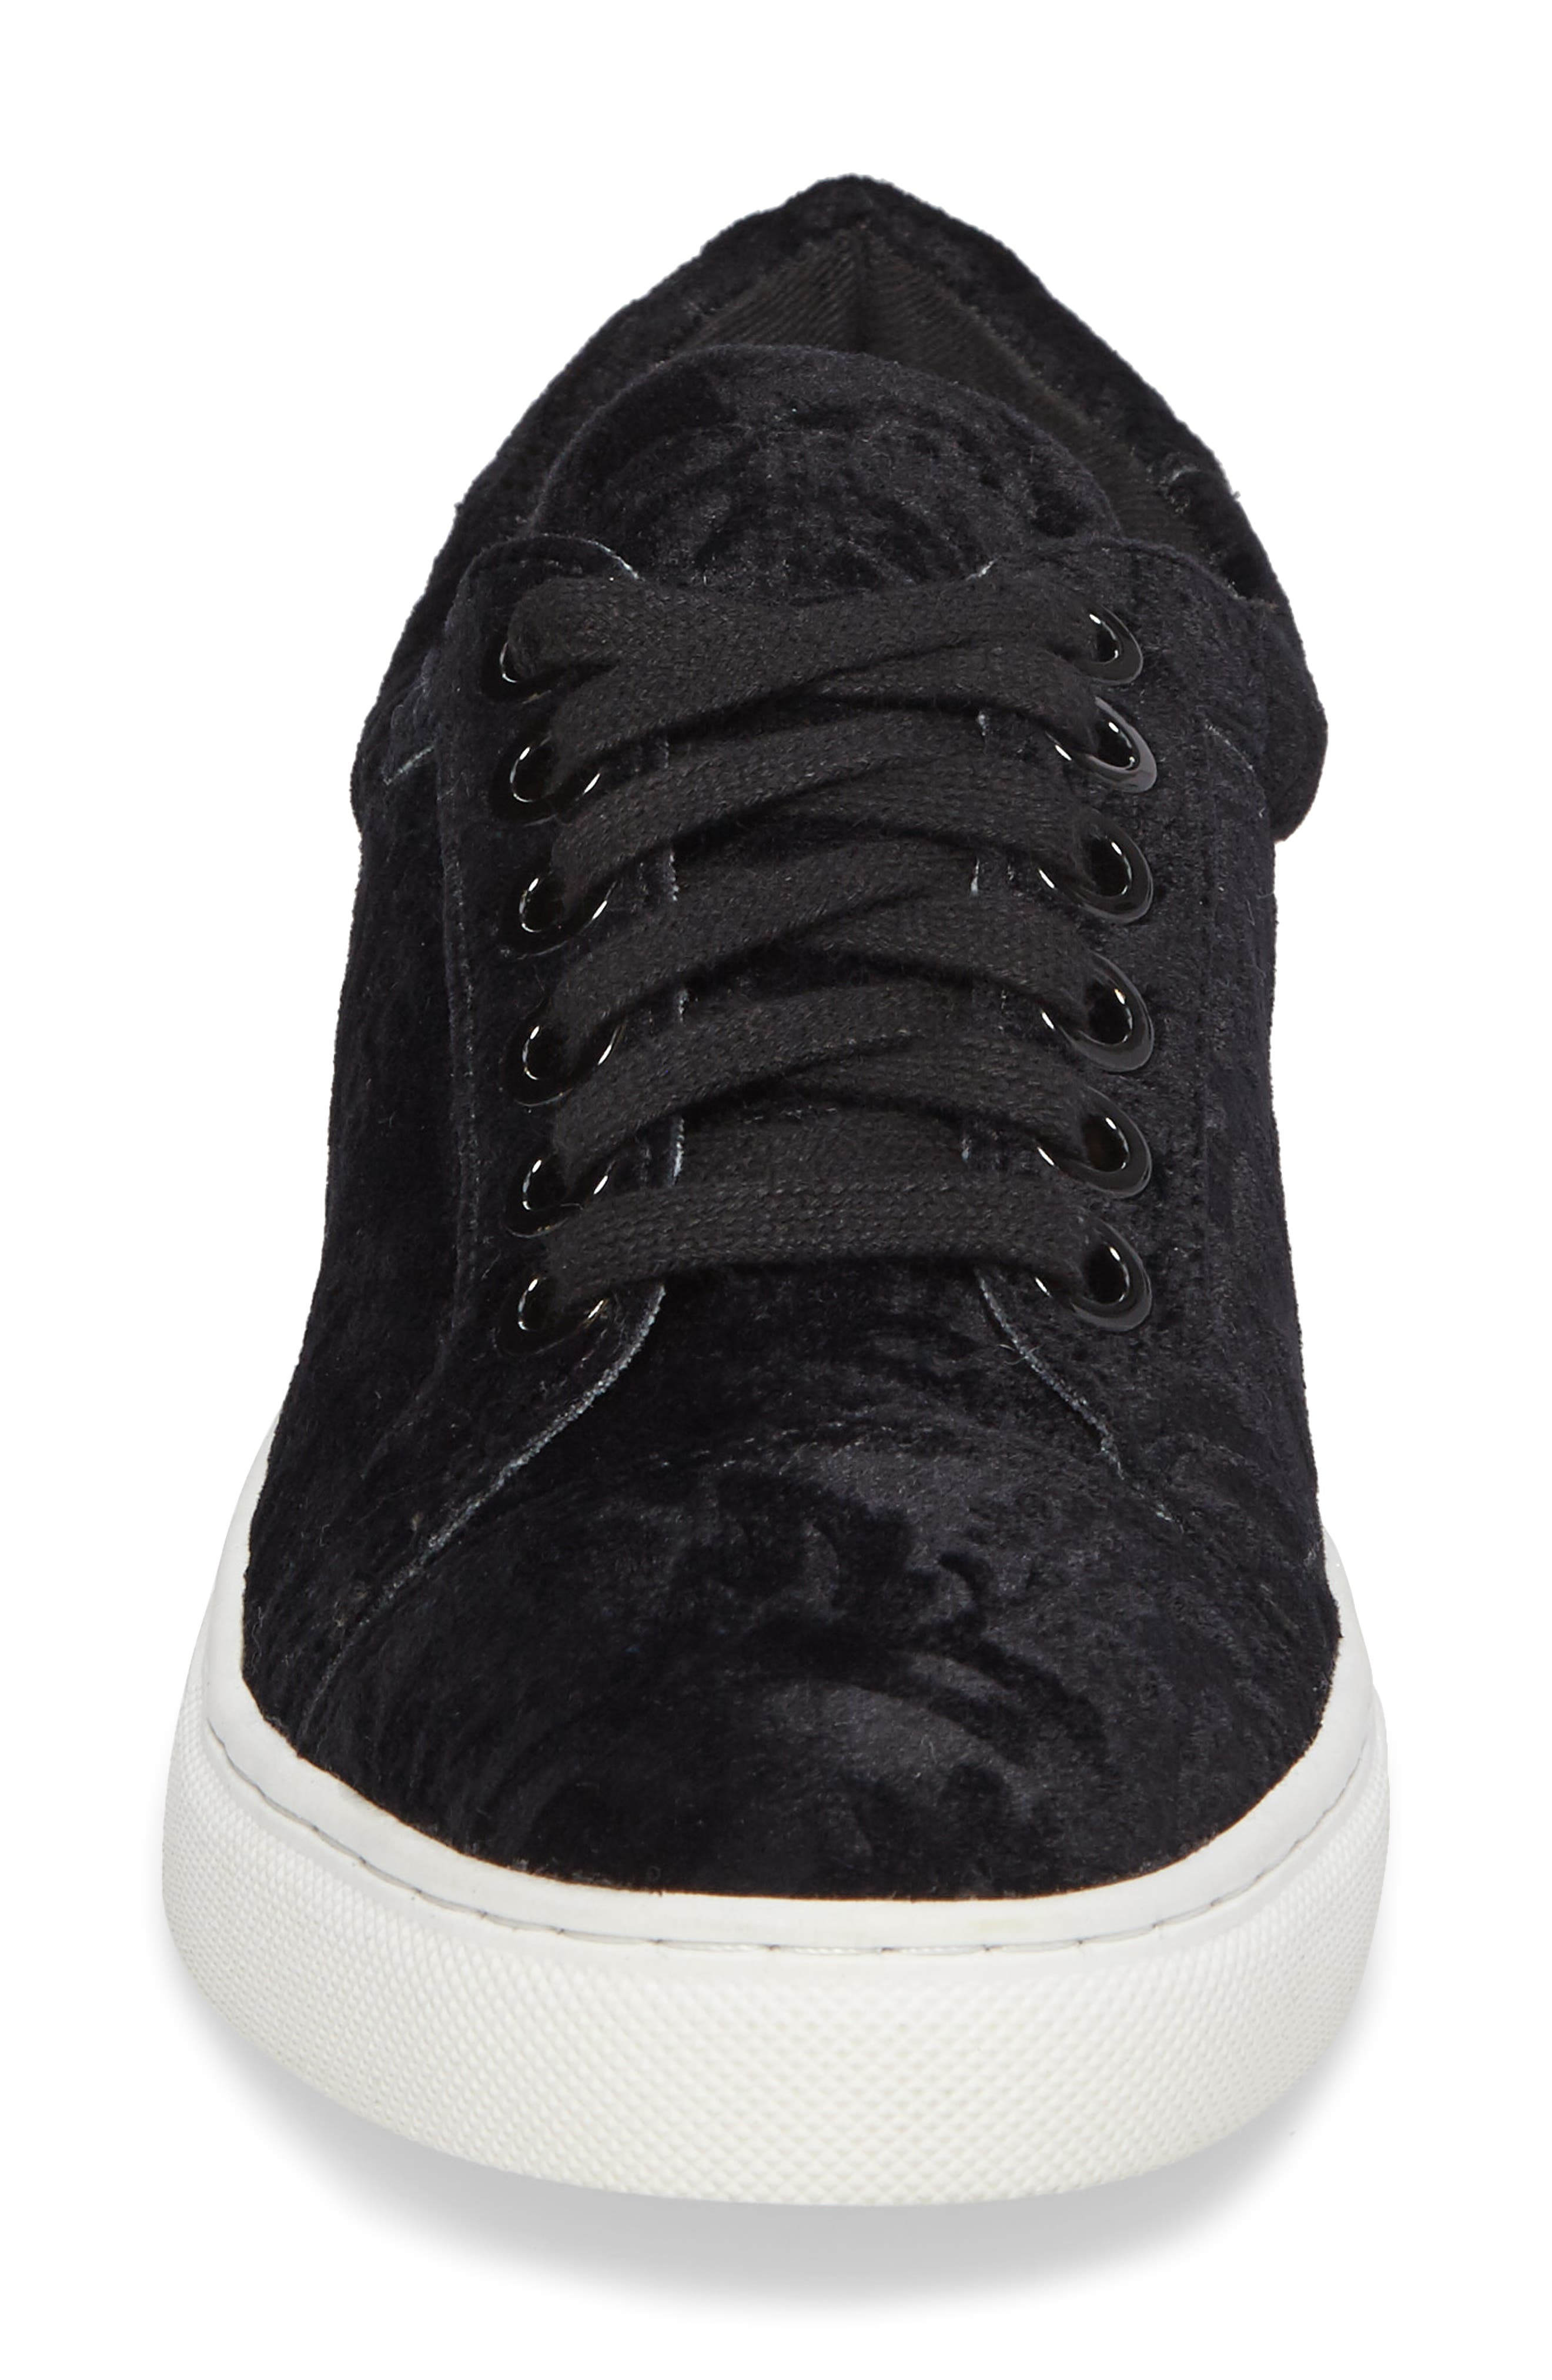 Bleecker Too Sneaker,                             Alternate thumbnail 4, color,                             Black Floral Velvet